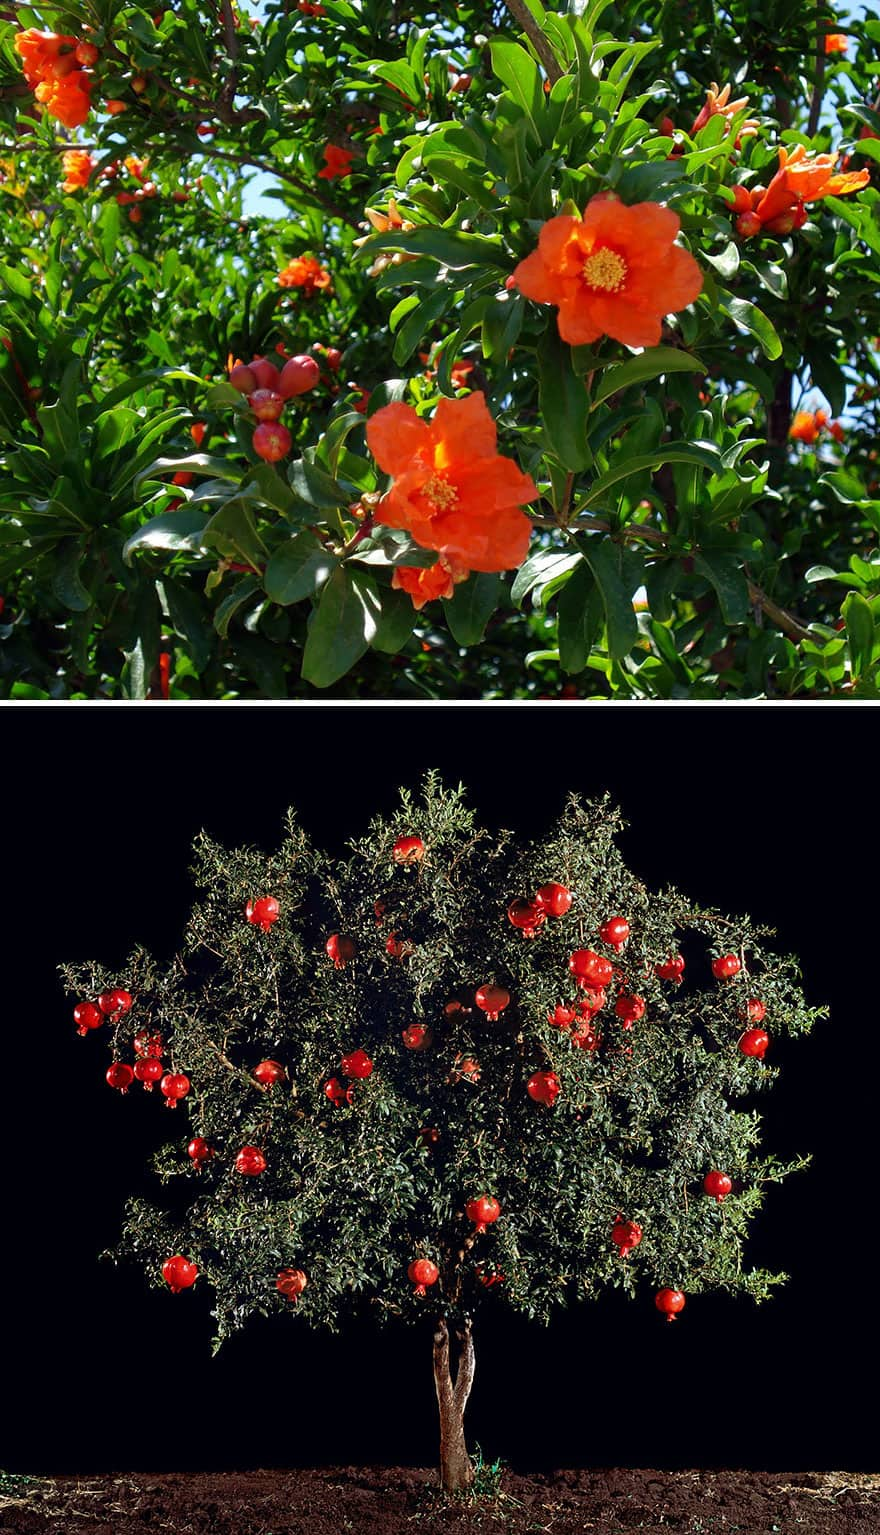 Pomegranate blossoms and fruit growing on trees.